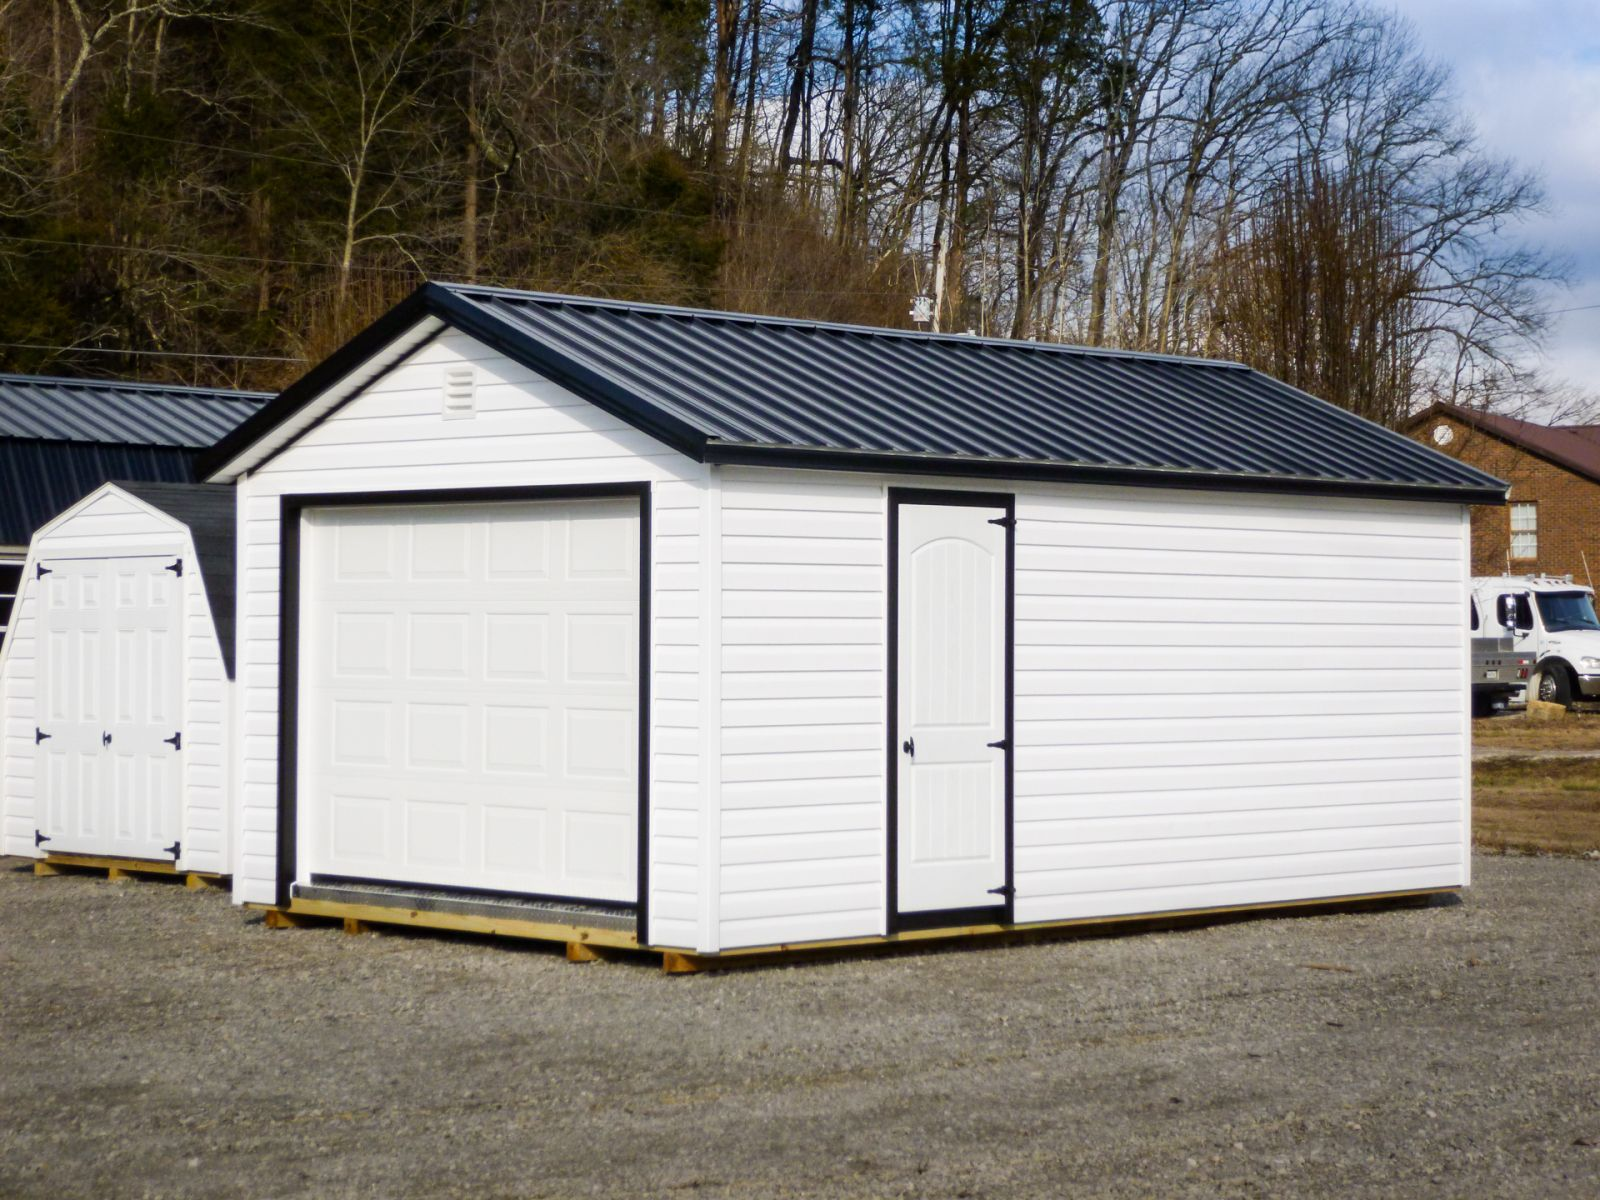 A garage shed in Kentucky with vinyl siding and a black metal roof